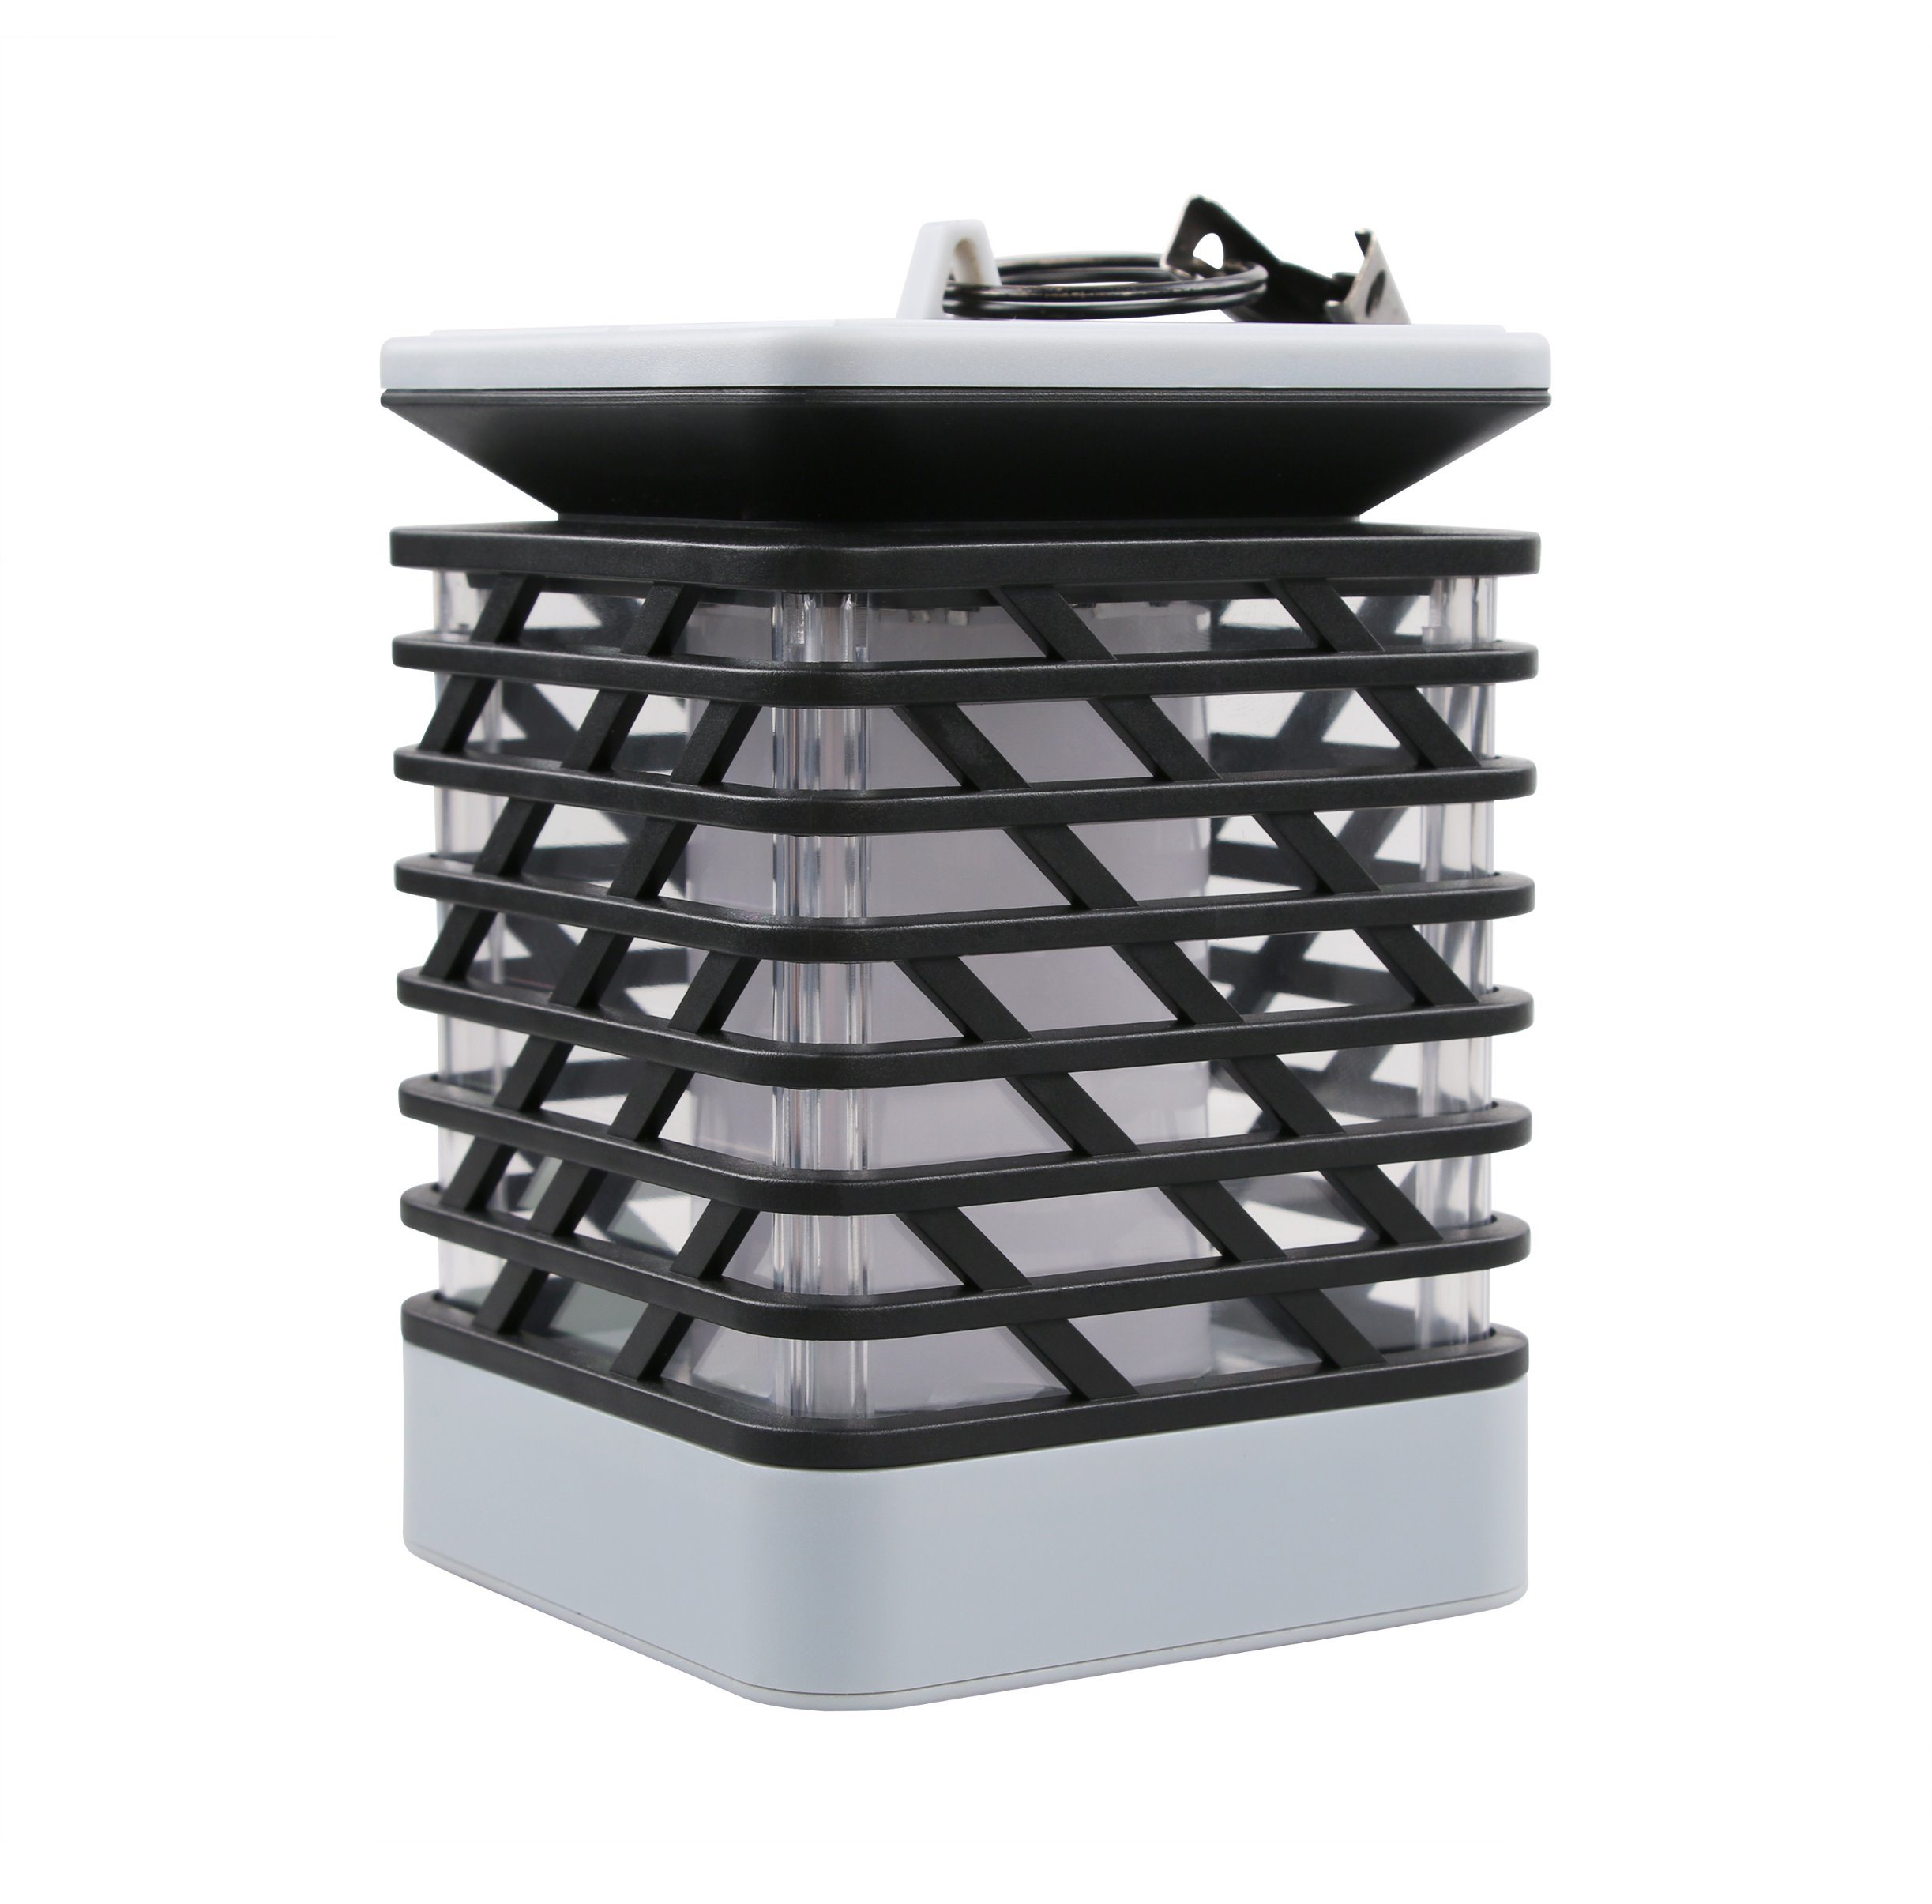 dawn lamp down powered black mounted patio lights finish exterior fixtures cylinder wall sconces up lantern outdoor in and coach to ceiling mount dusk light solar lighting